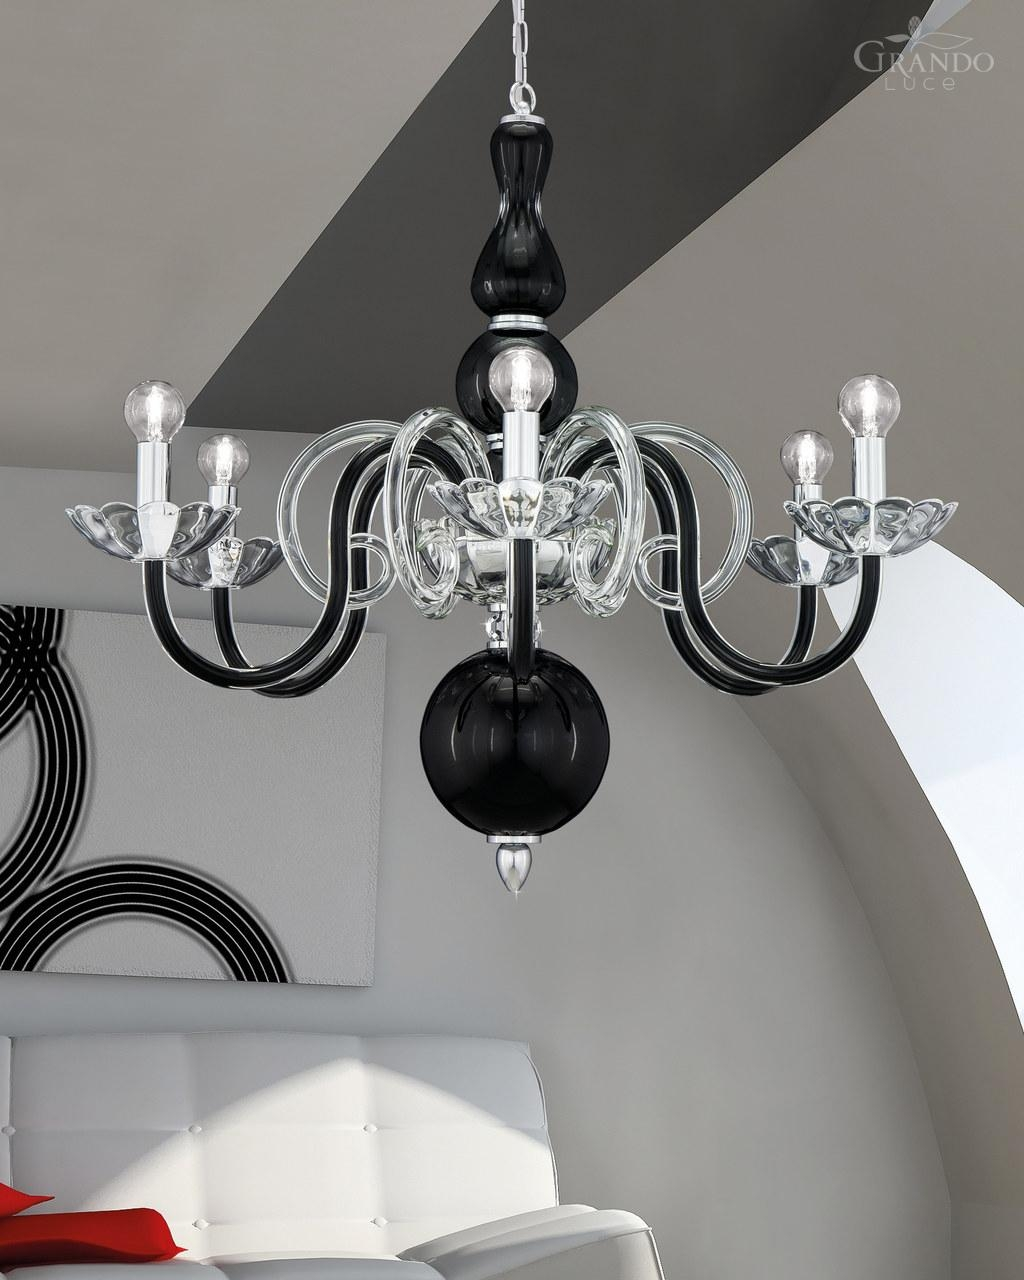 Chandeliers 1186 Ch Chrome Black Crystal Chandelier Grandoluce With Contemporary Black Chandelier (Image 5 of 15)